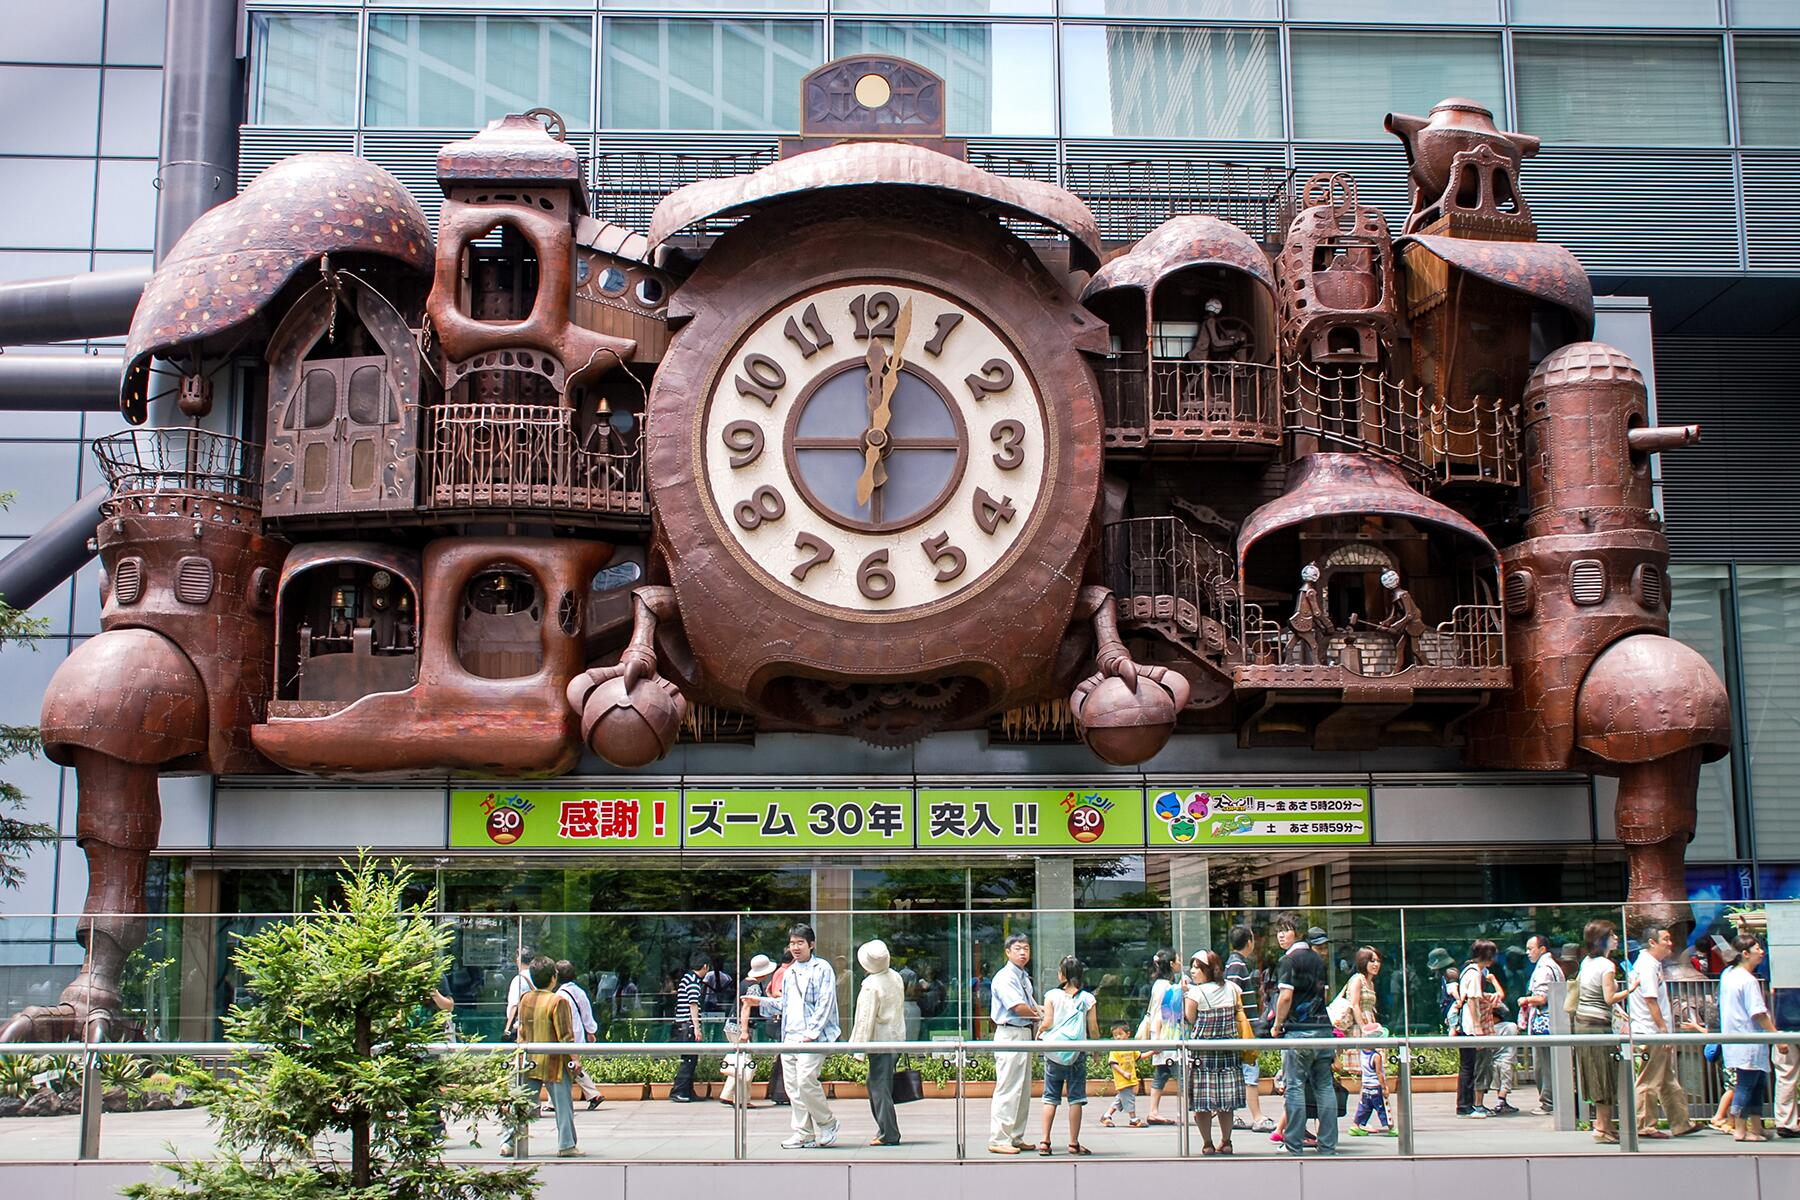 Best Places To Go To Tokyo Japan If You Like Studio Ghibli Movies Like Totoro Spirited Away And Howl S Moving Castle